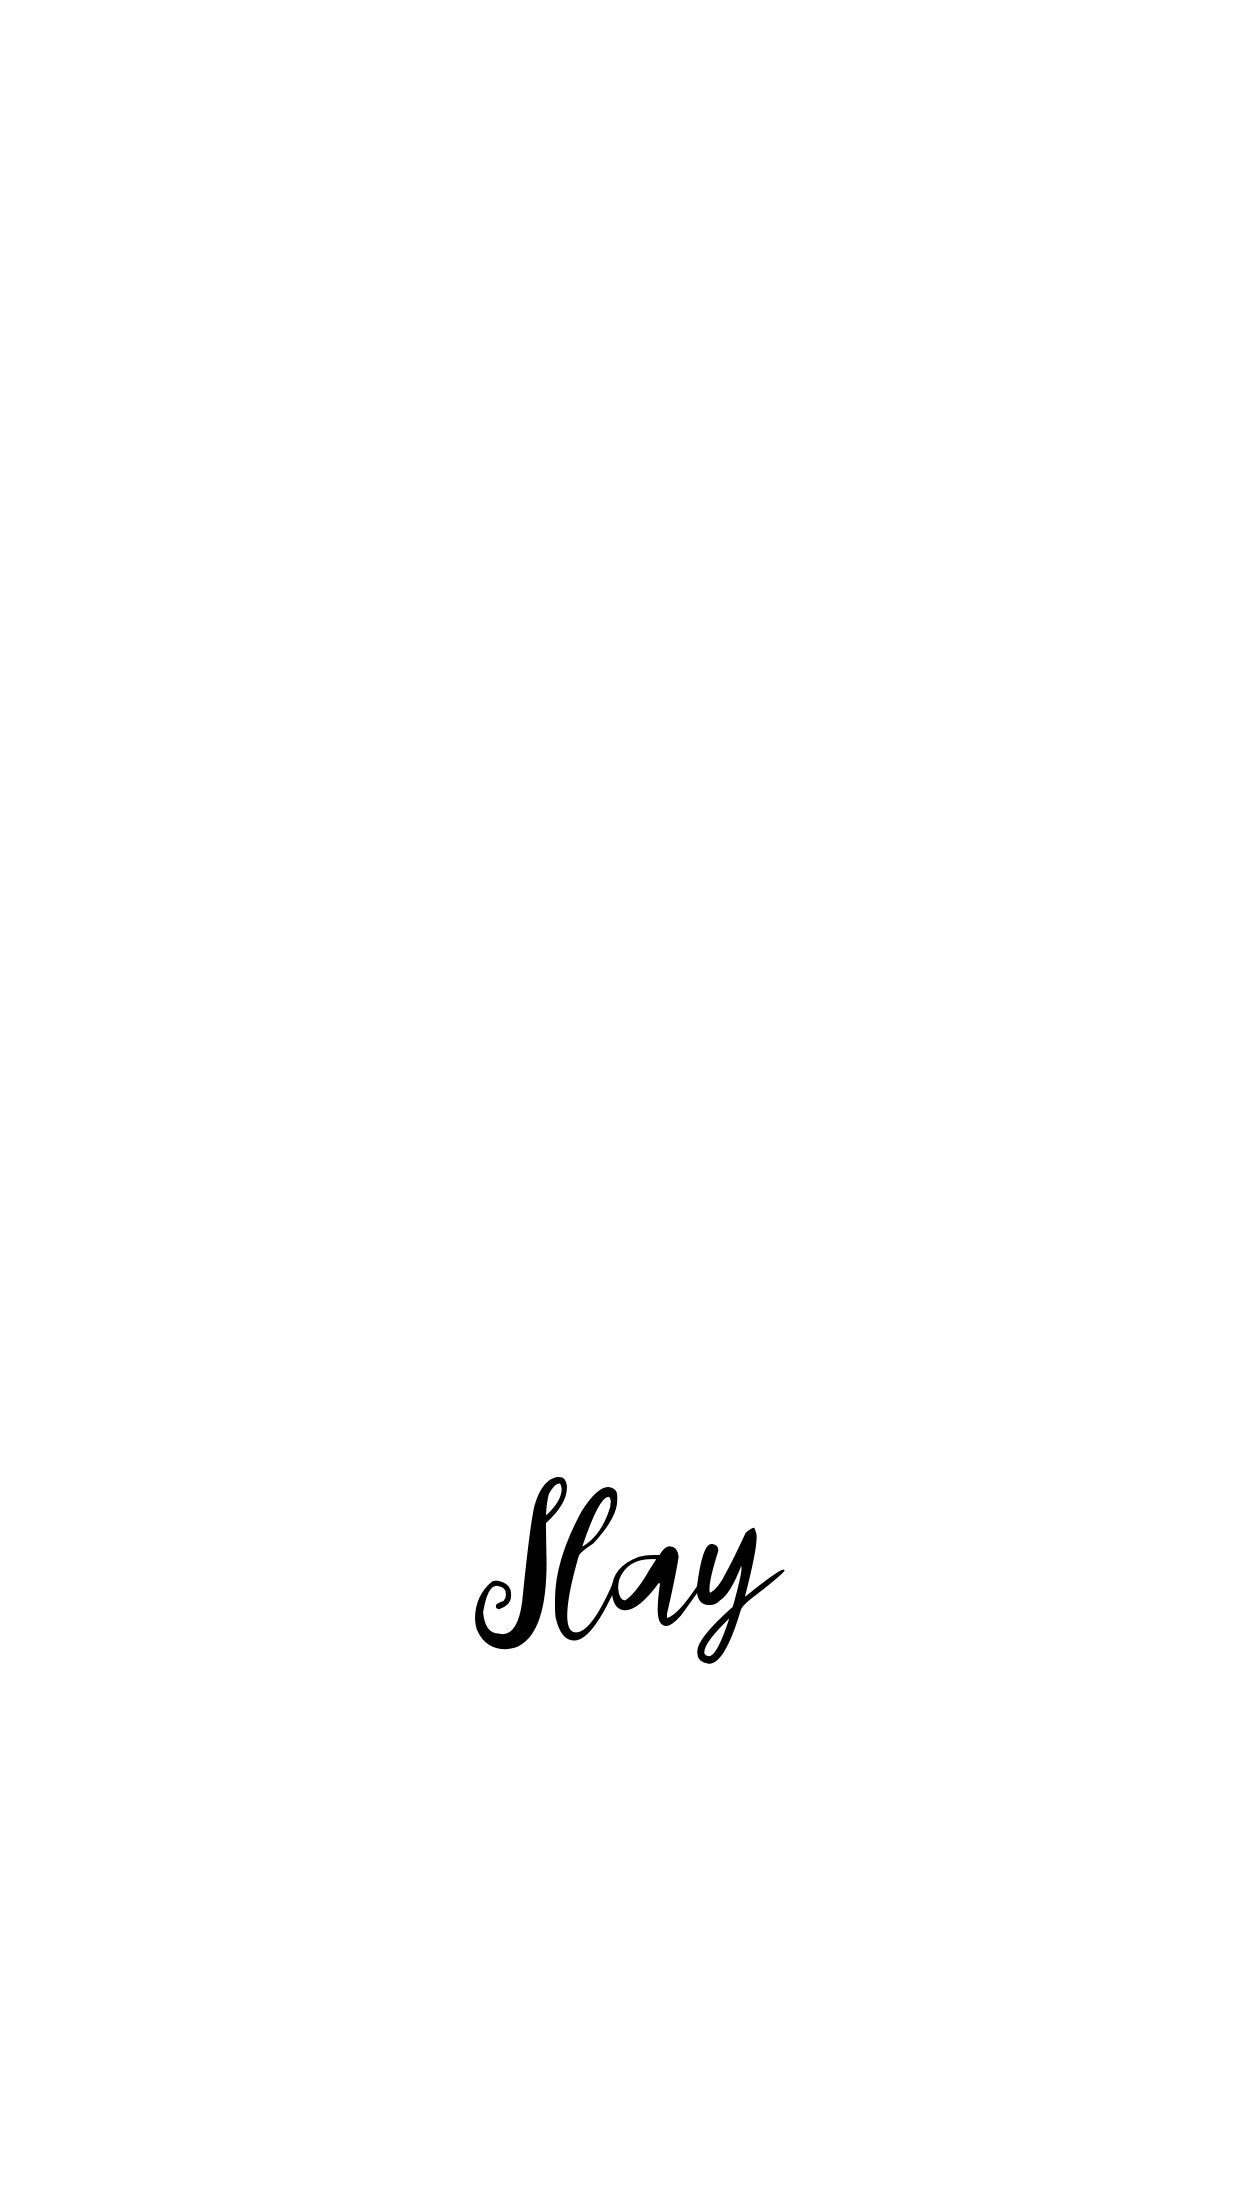 Cute Wallpapers Of The Word Slay Black White Minimal Simple Wallpaper Background